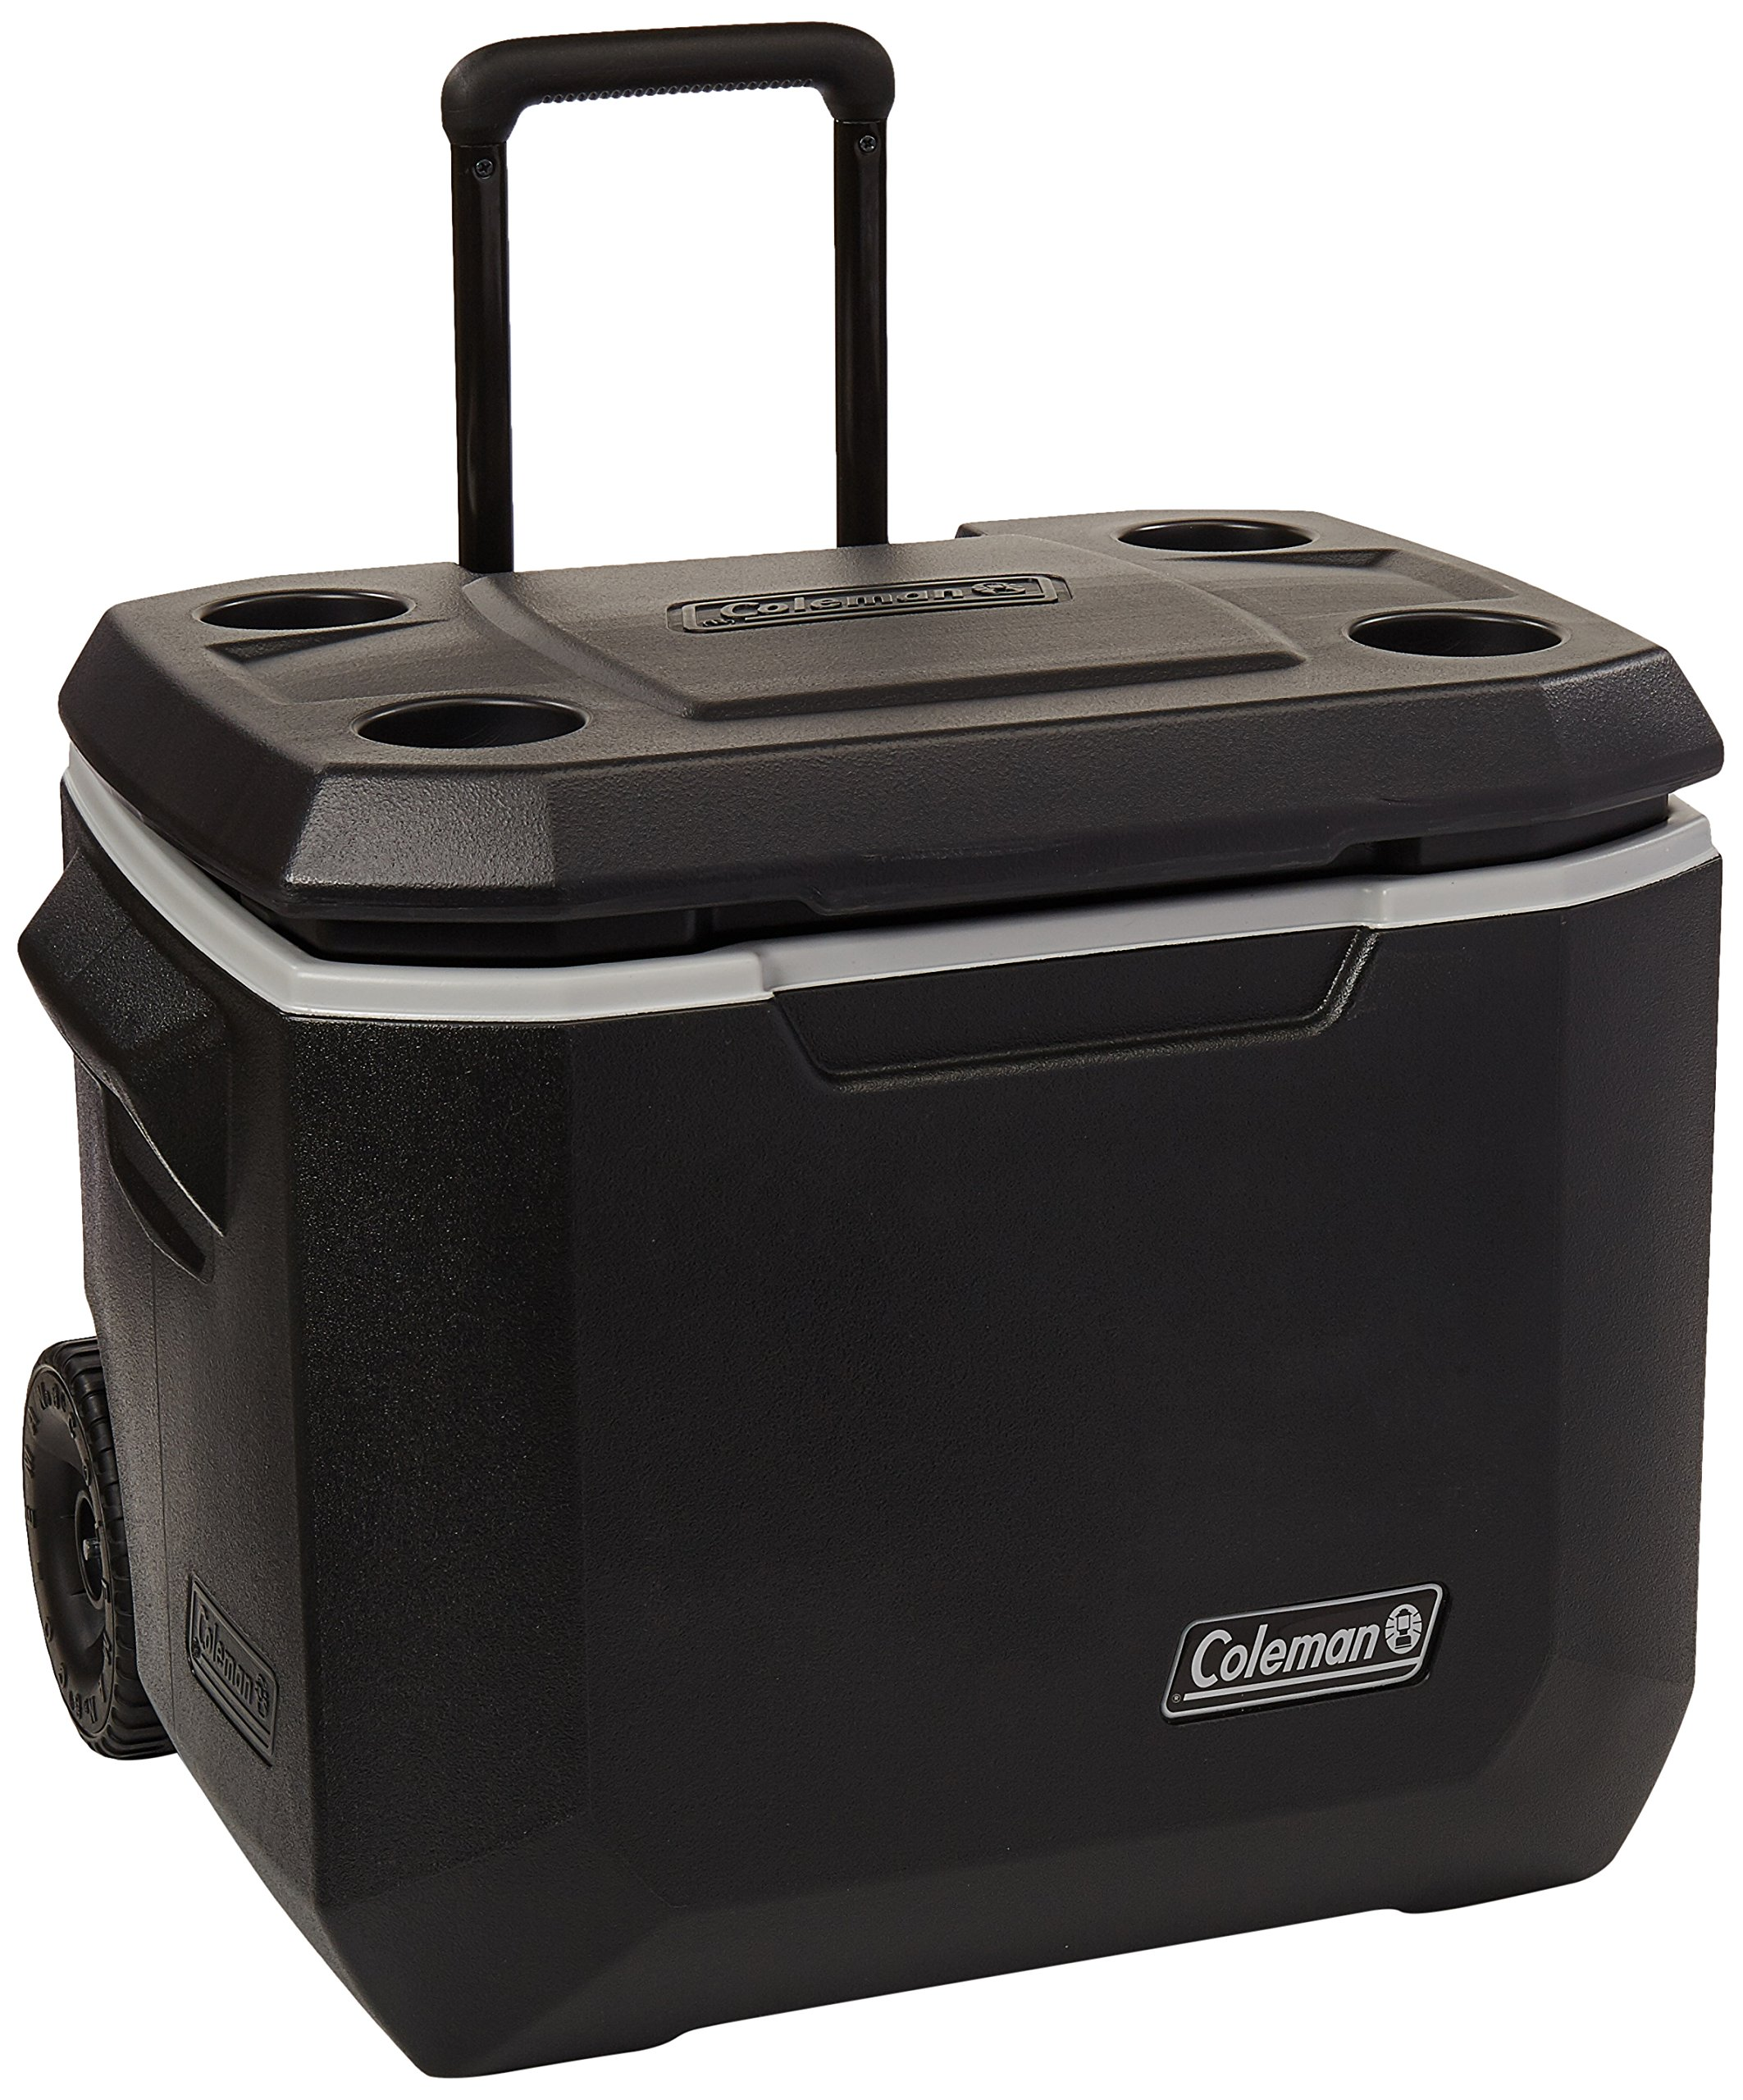 Coleman Xtreme Series Wheeled Cooler, 50 Quart by Coleman